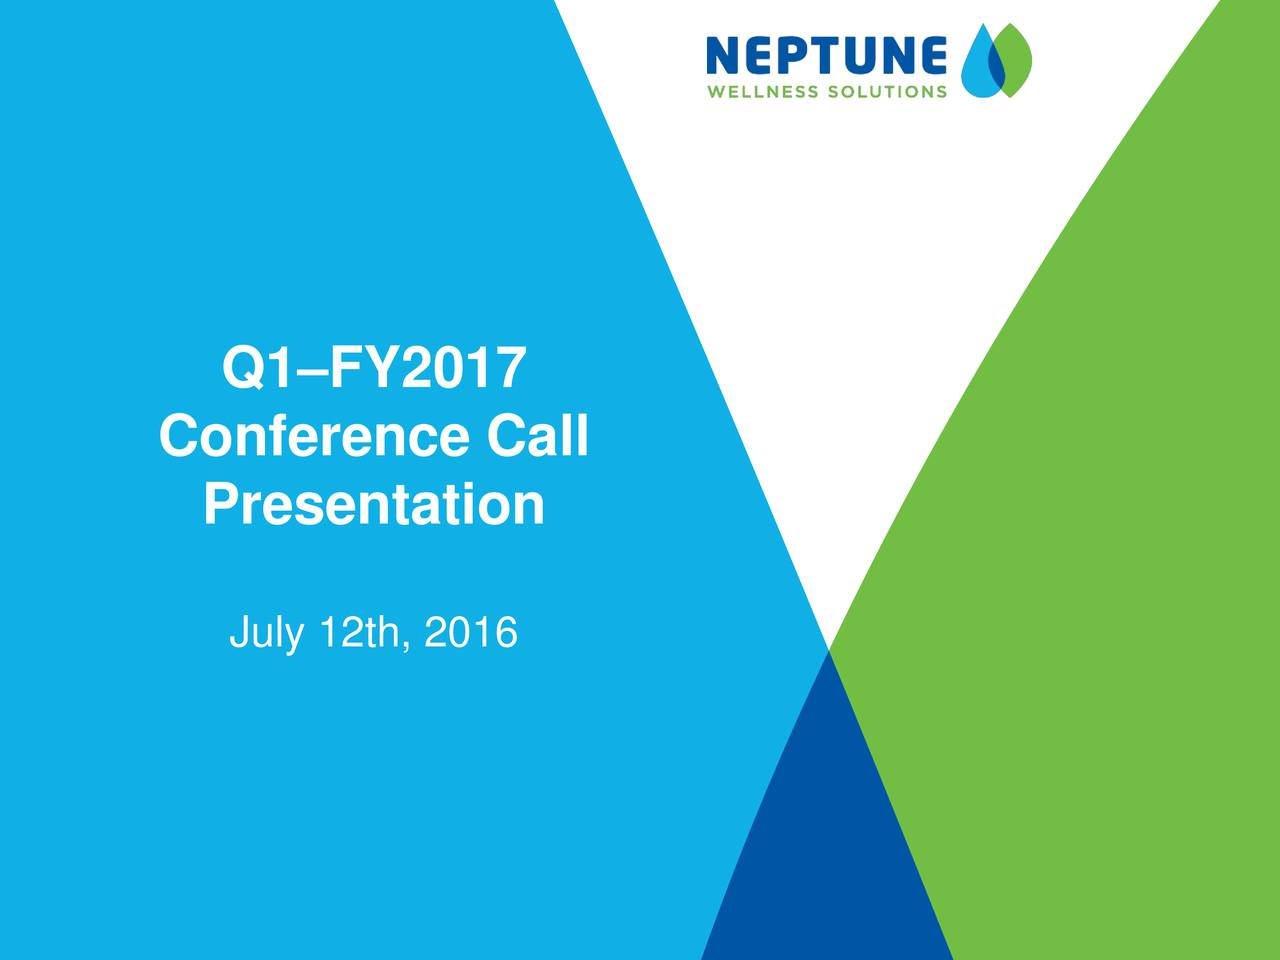 Conference Call Presentation July 12th, 2016